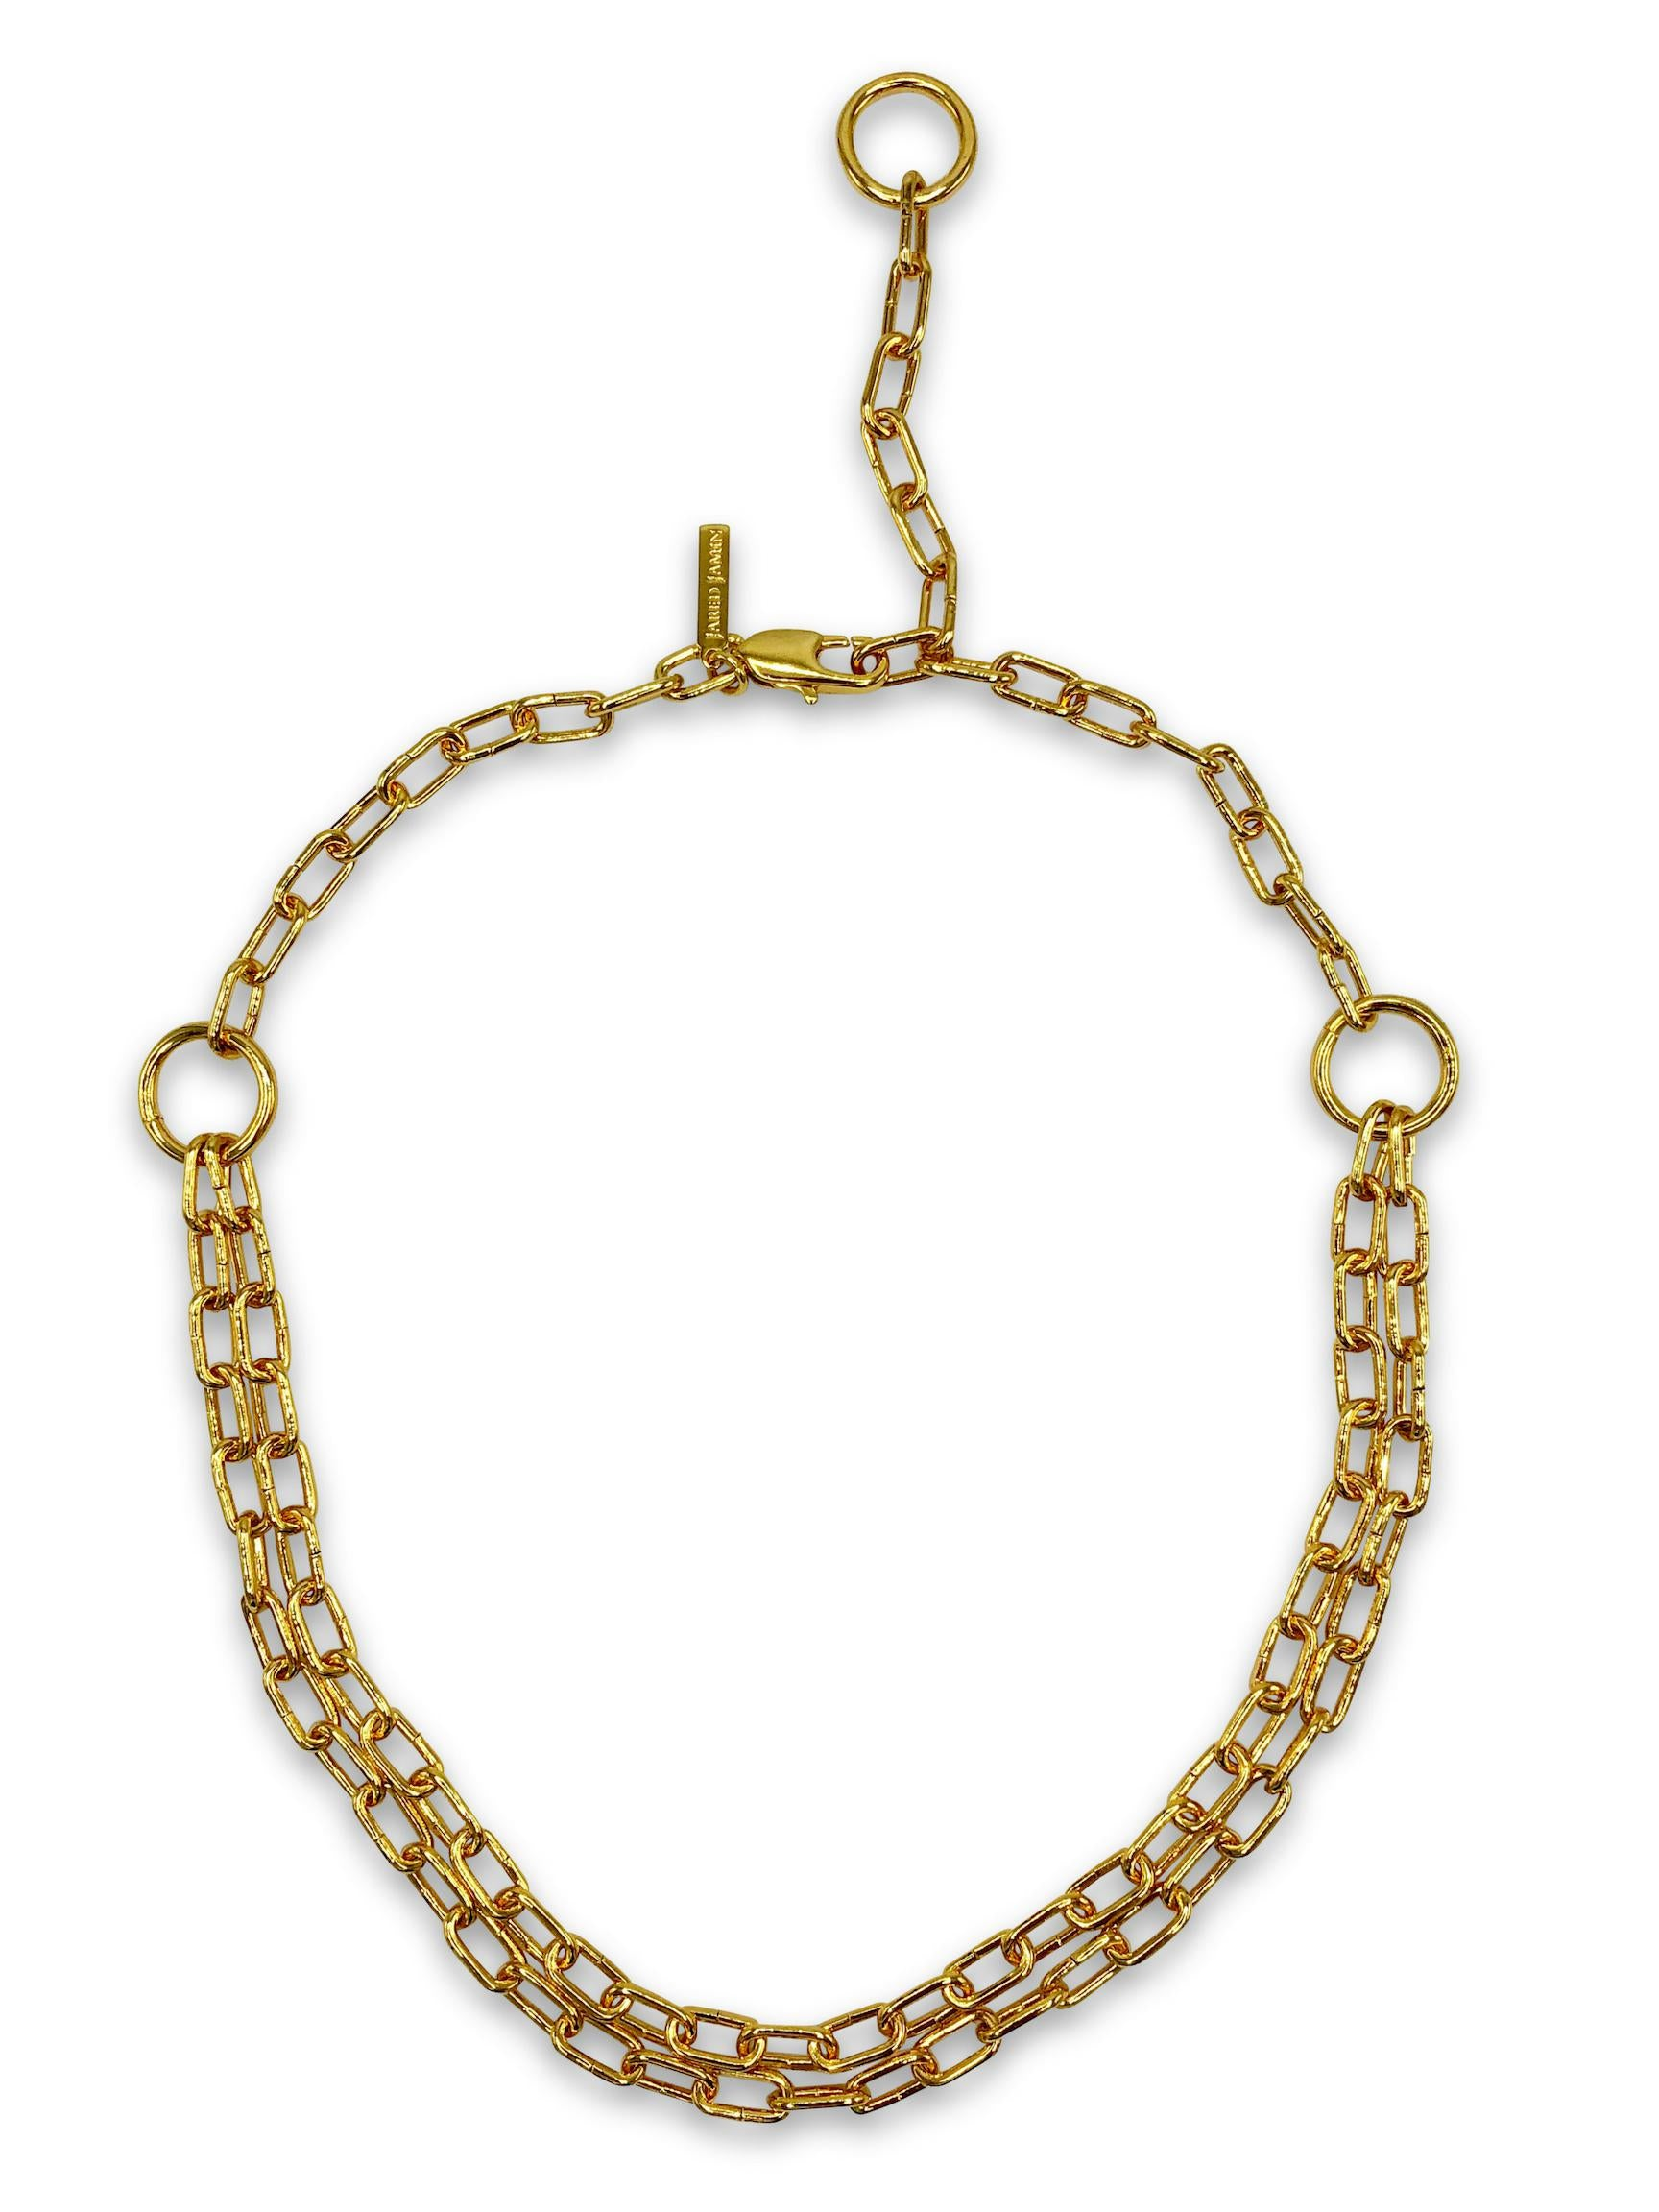 Double Gold Chain Reaction Necklace-Necklaces-JAREDJAMIN Jewelry Online-Gold-JARED JAMIN